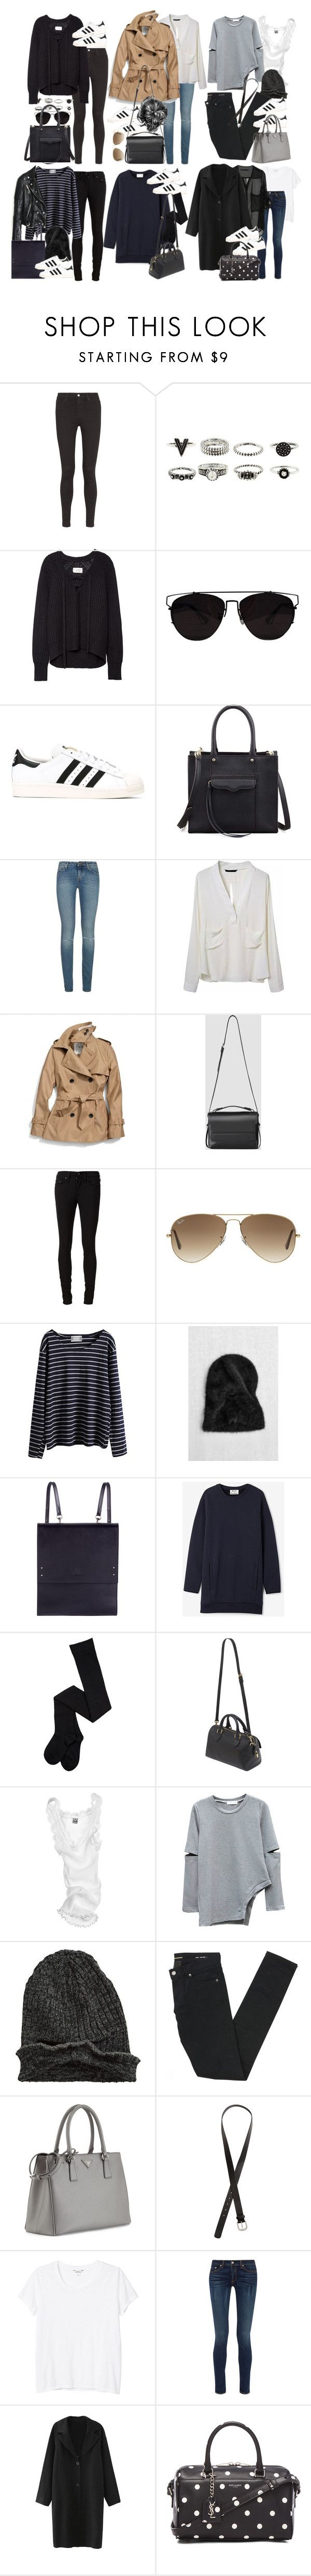 """Inspired fall post with superstar Adidas"" by nikka-phillips ❤ liked on Polyvore featuring AG Adriano Goldschmied, Retrò, adidas, Rebecca Minkoff, Yves Saint Laurent, Coach, AllSaints, rag & bone/JEAN, Ray-Ban and Burberry"